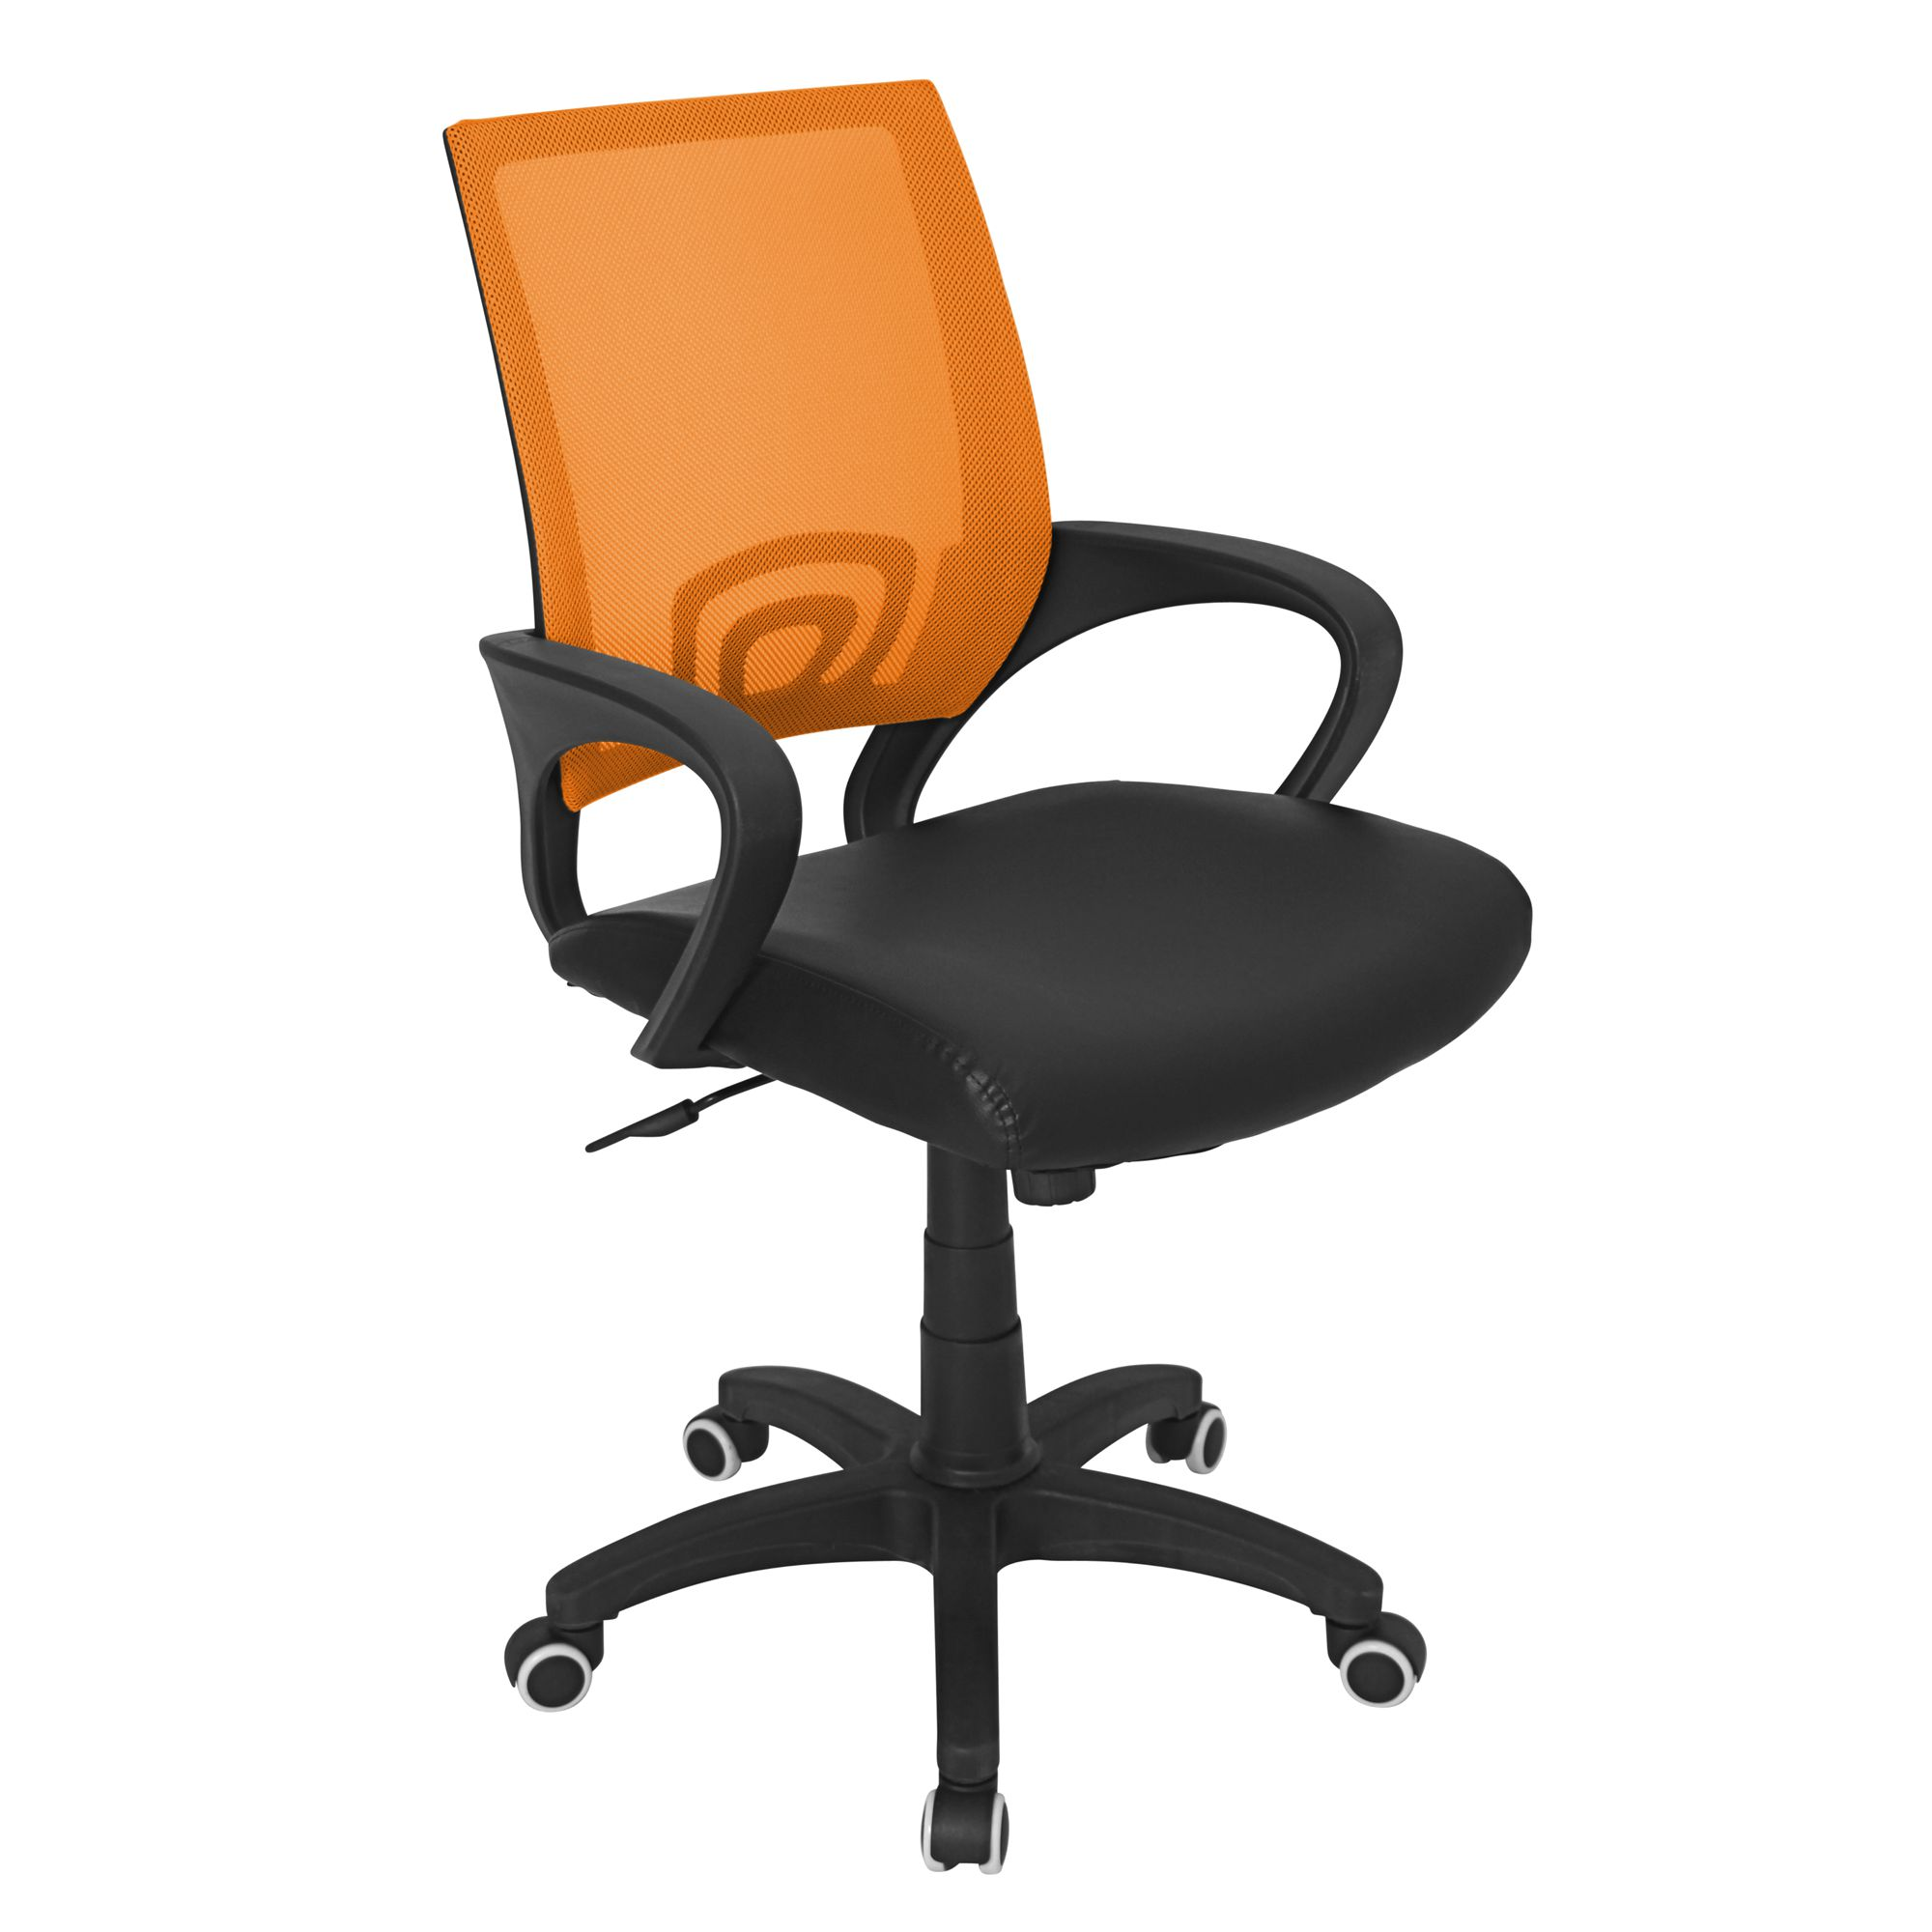 Officer Modern Adjustable Office Chair with Swivel in Orange by LumiSource